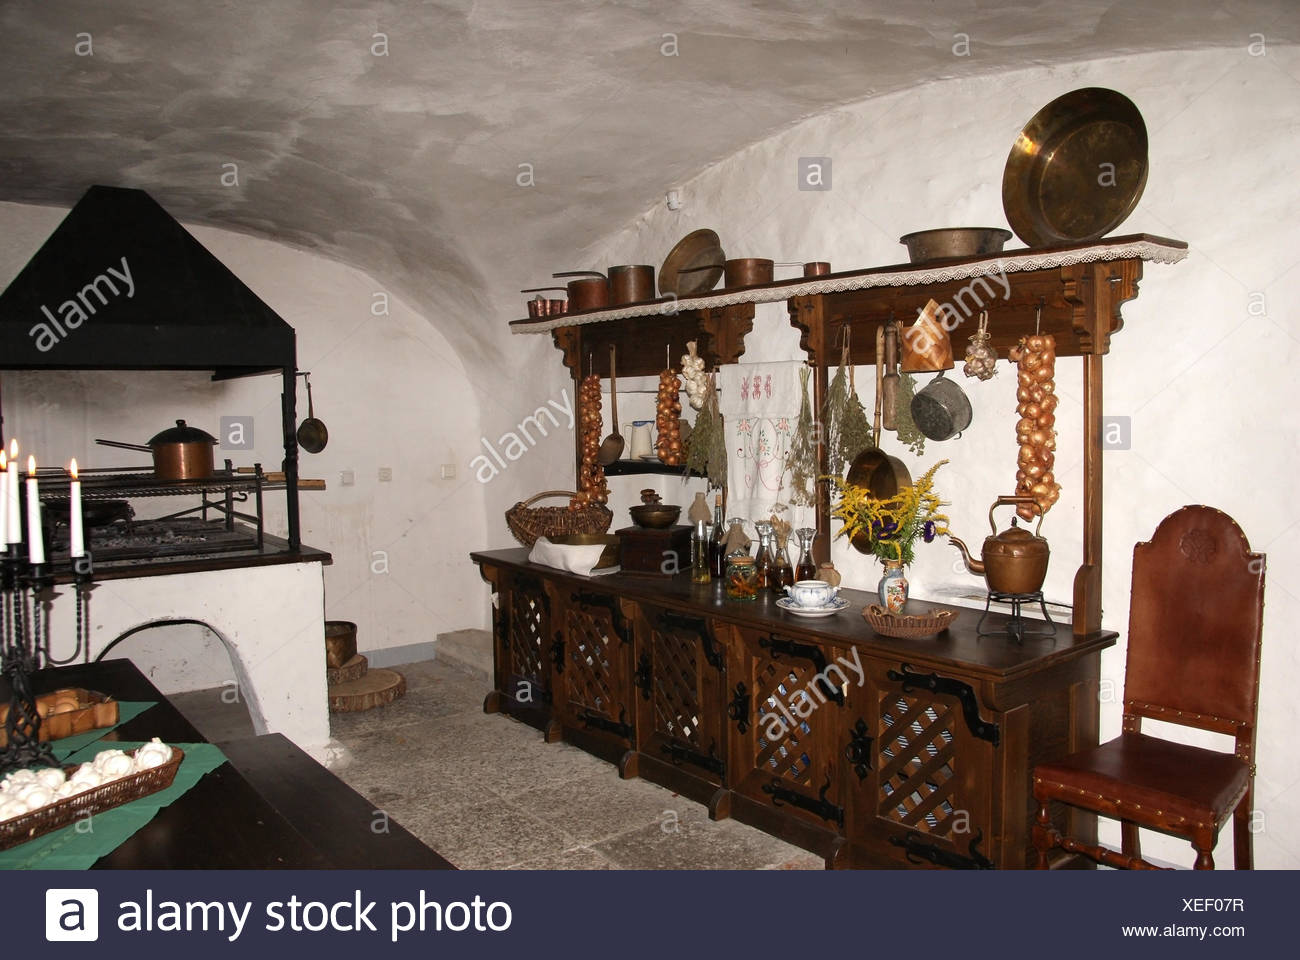 Old kitchen - Stock Image